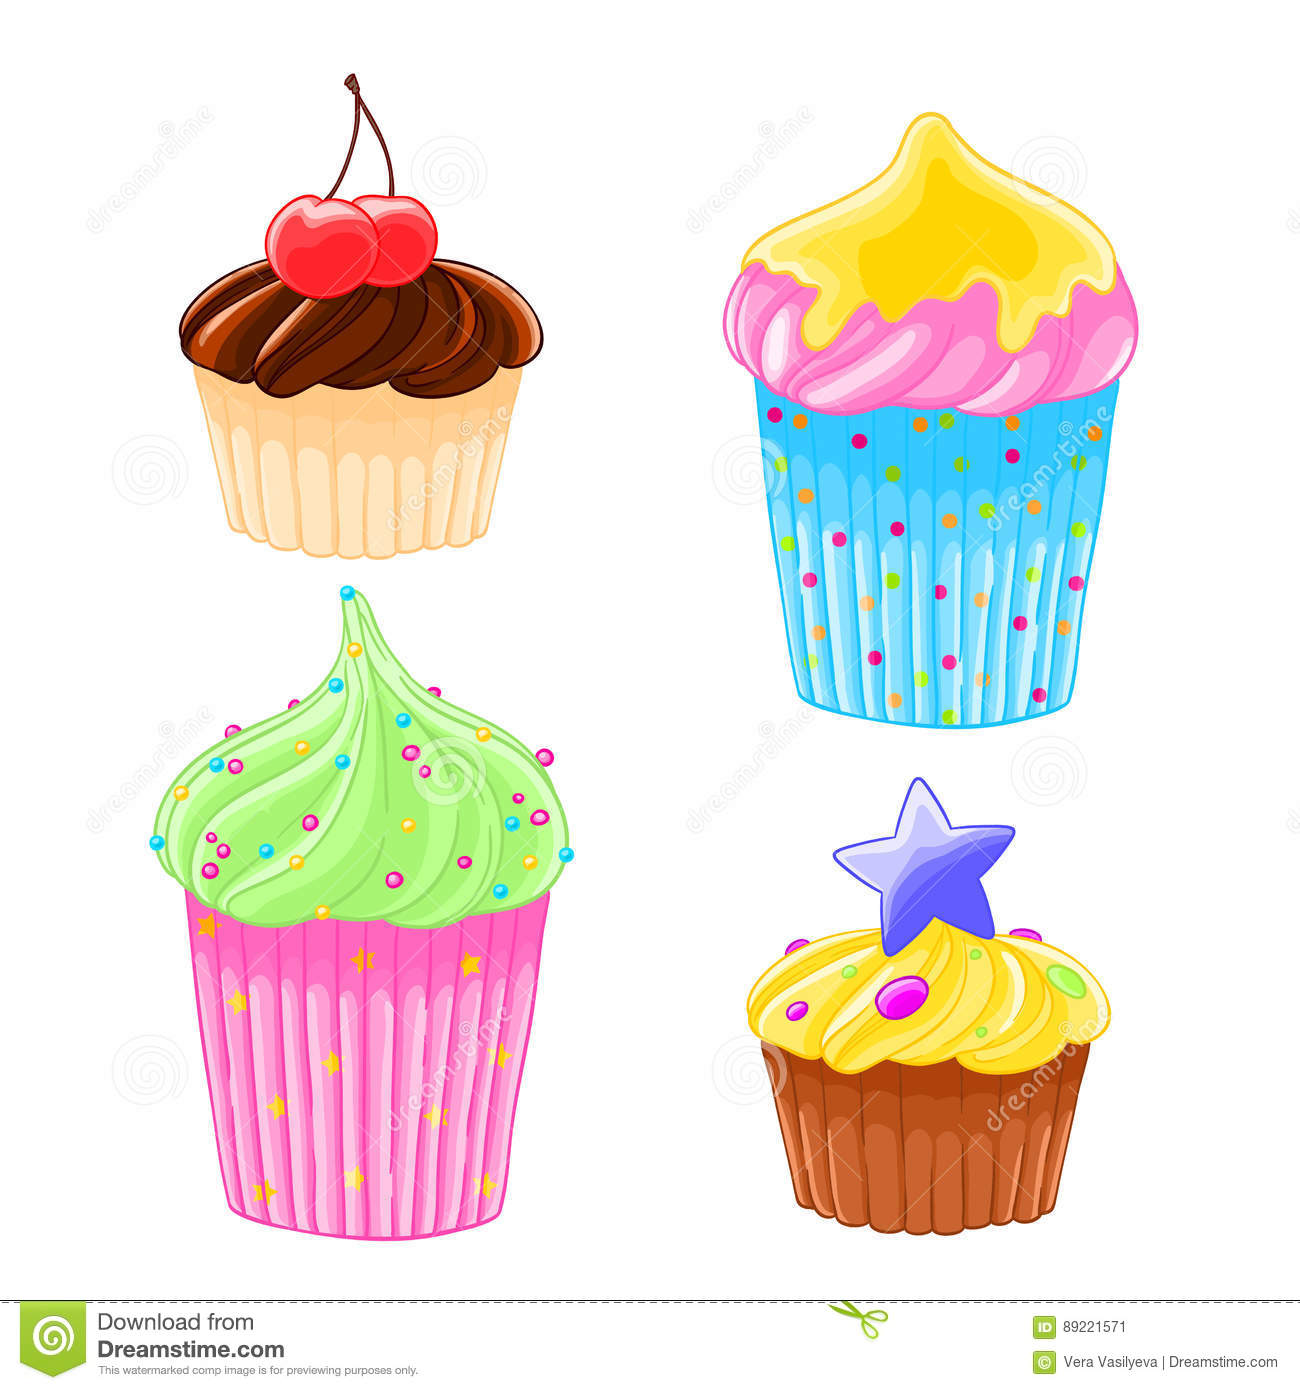 Set of four icons in cartoon style delicious muffins with frosting, chocolate and cherry.